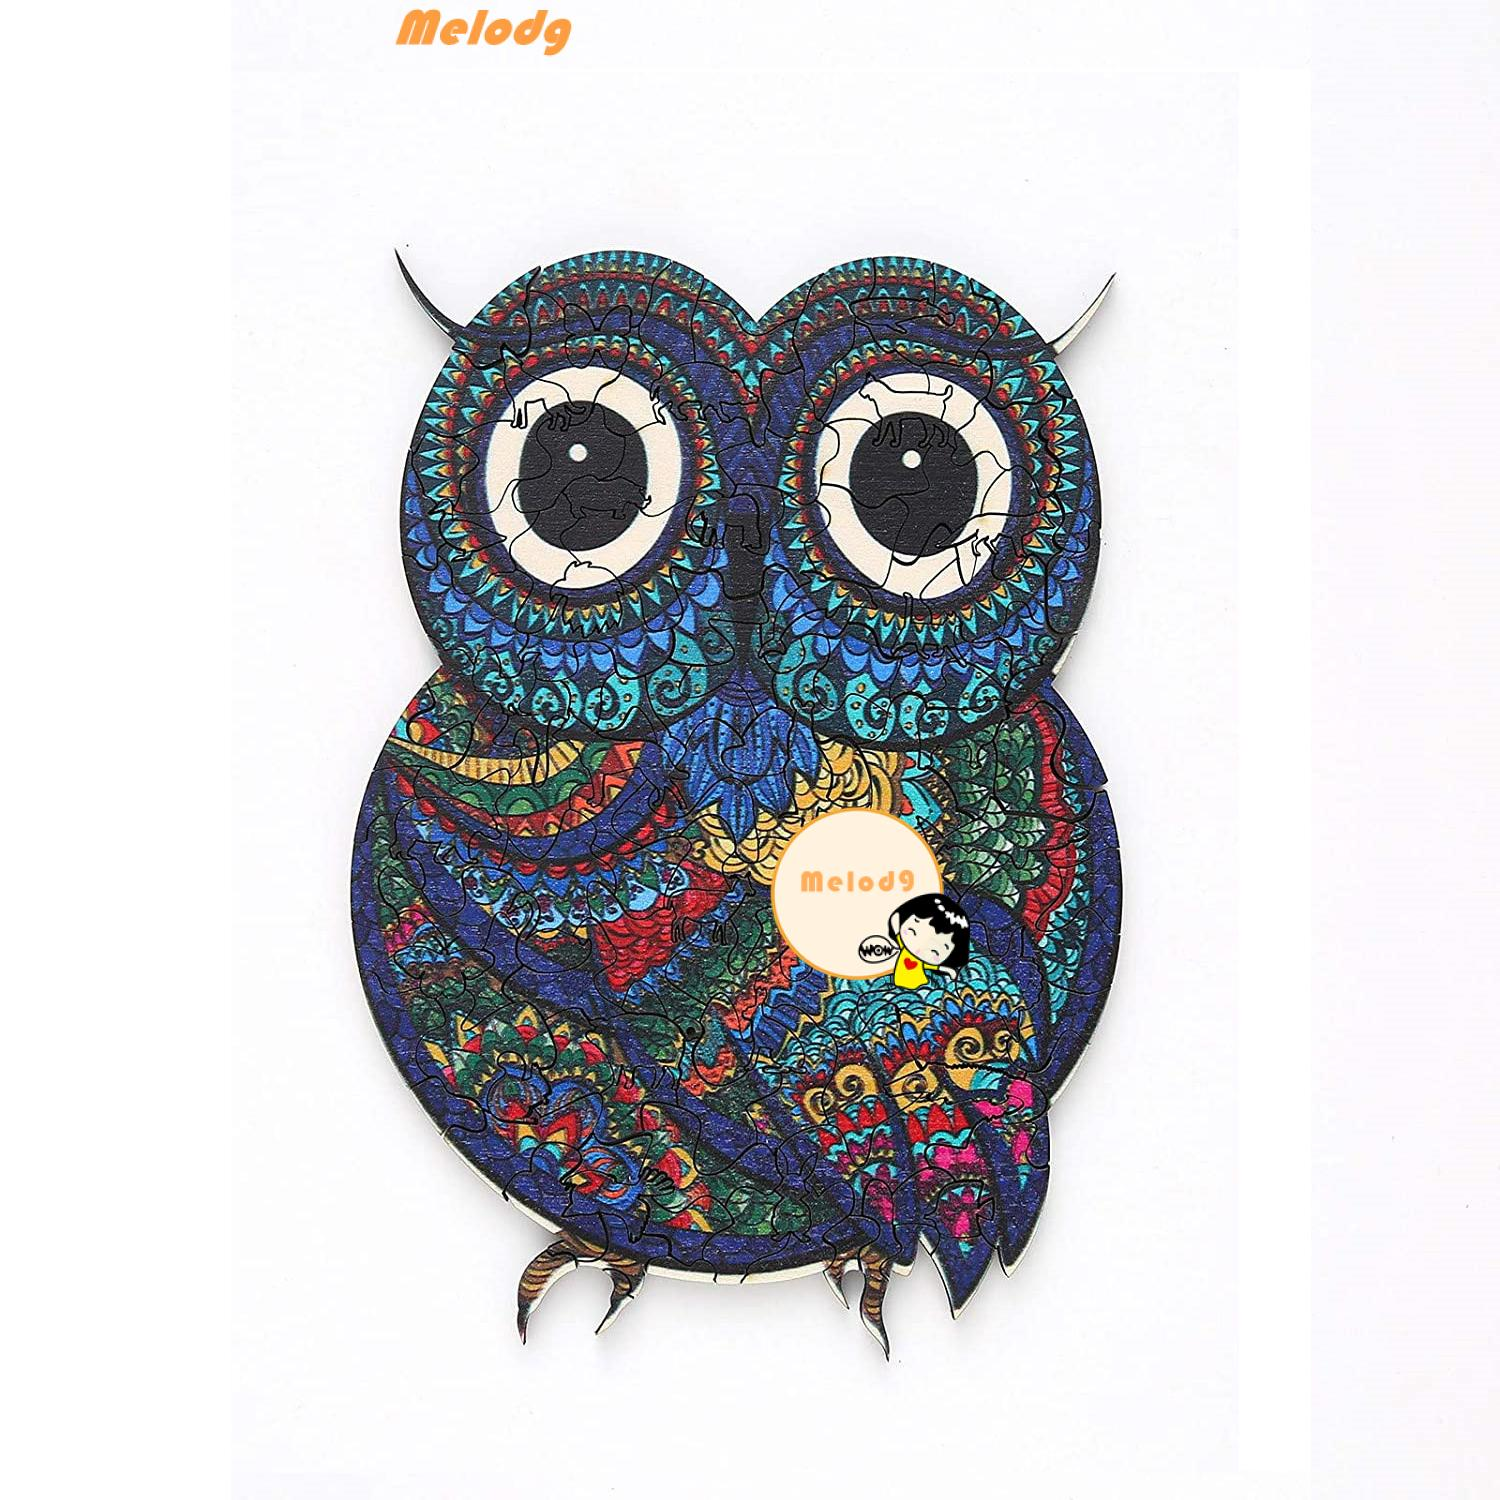 💍MELODG💍 Gift Wooden Jigsaw Puzzles Animal Educational Toys Wood Puzzle Toy Family Game Owl Adults Kids Unique Irregular Shape